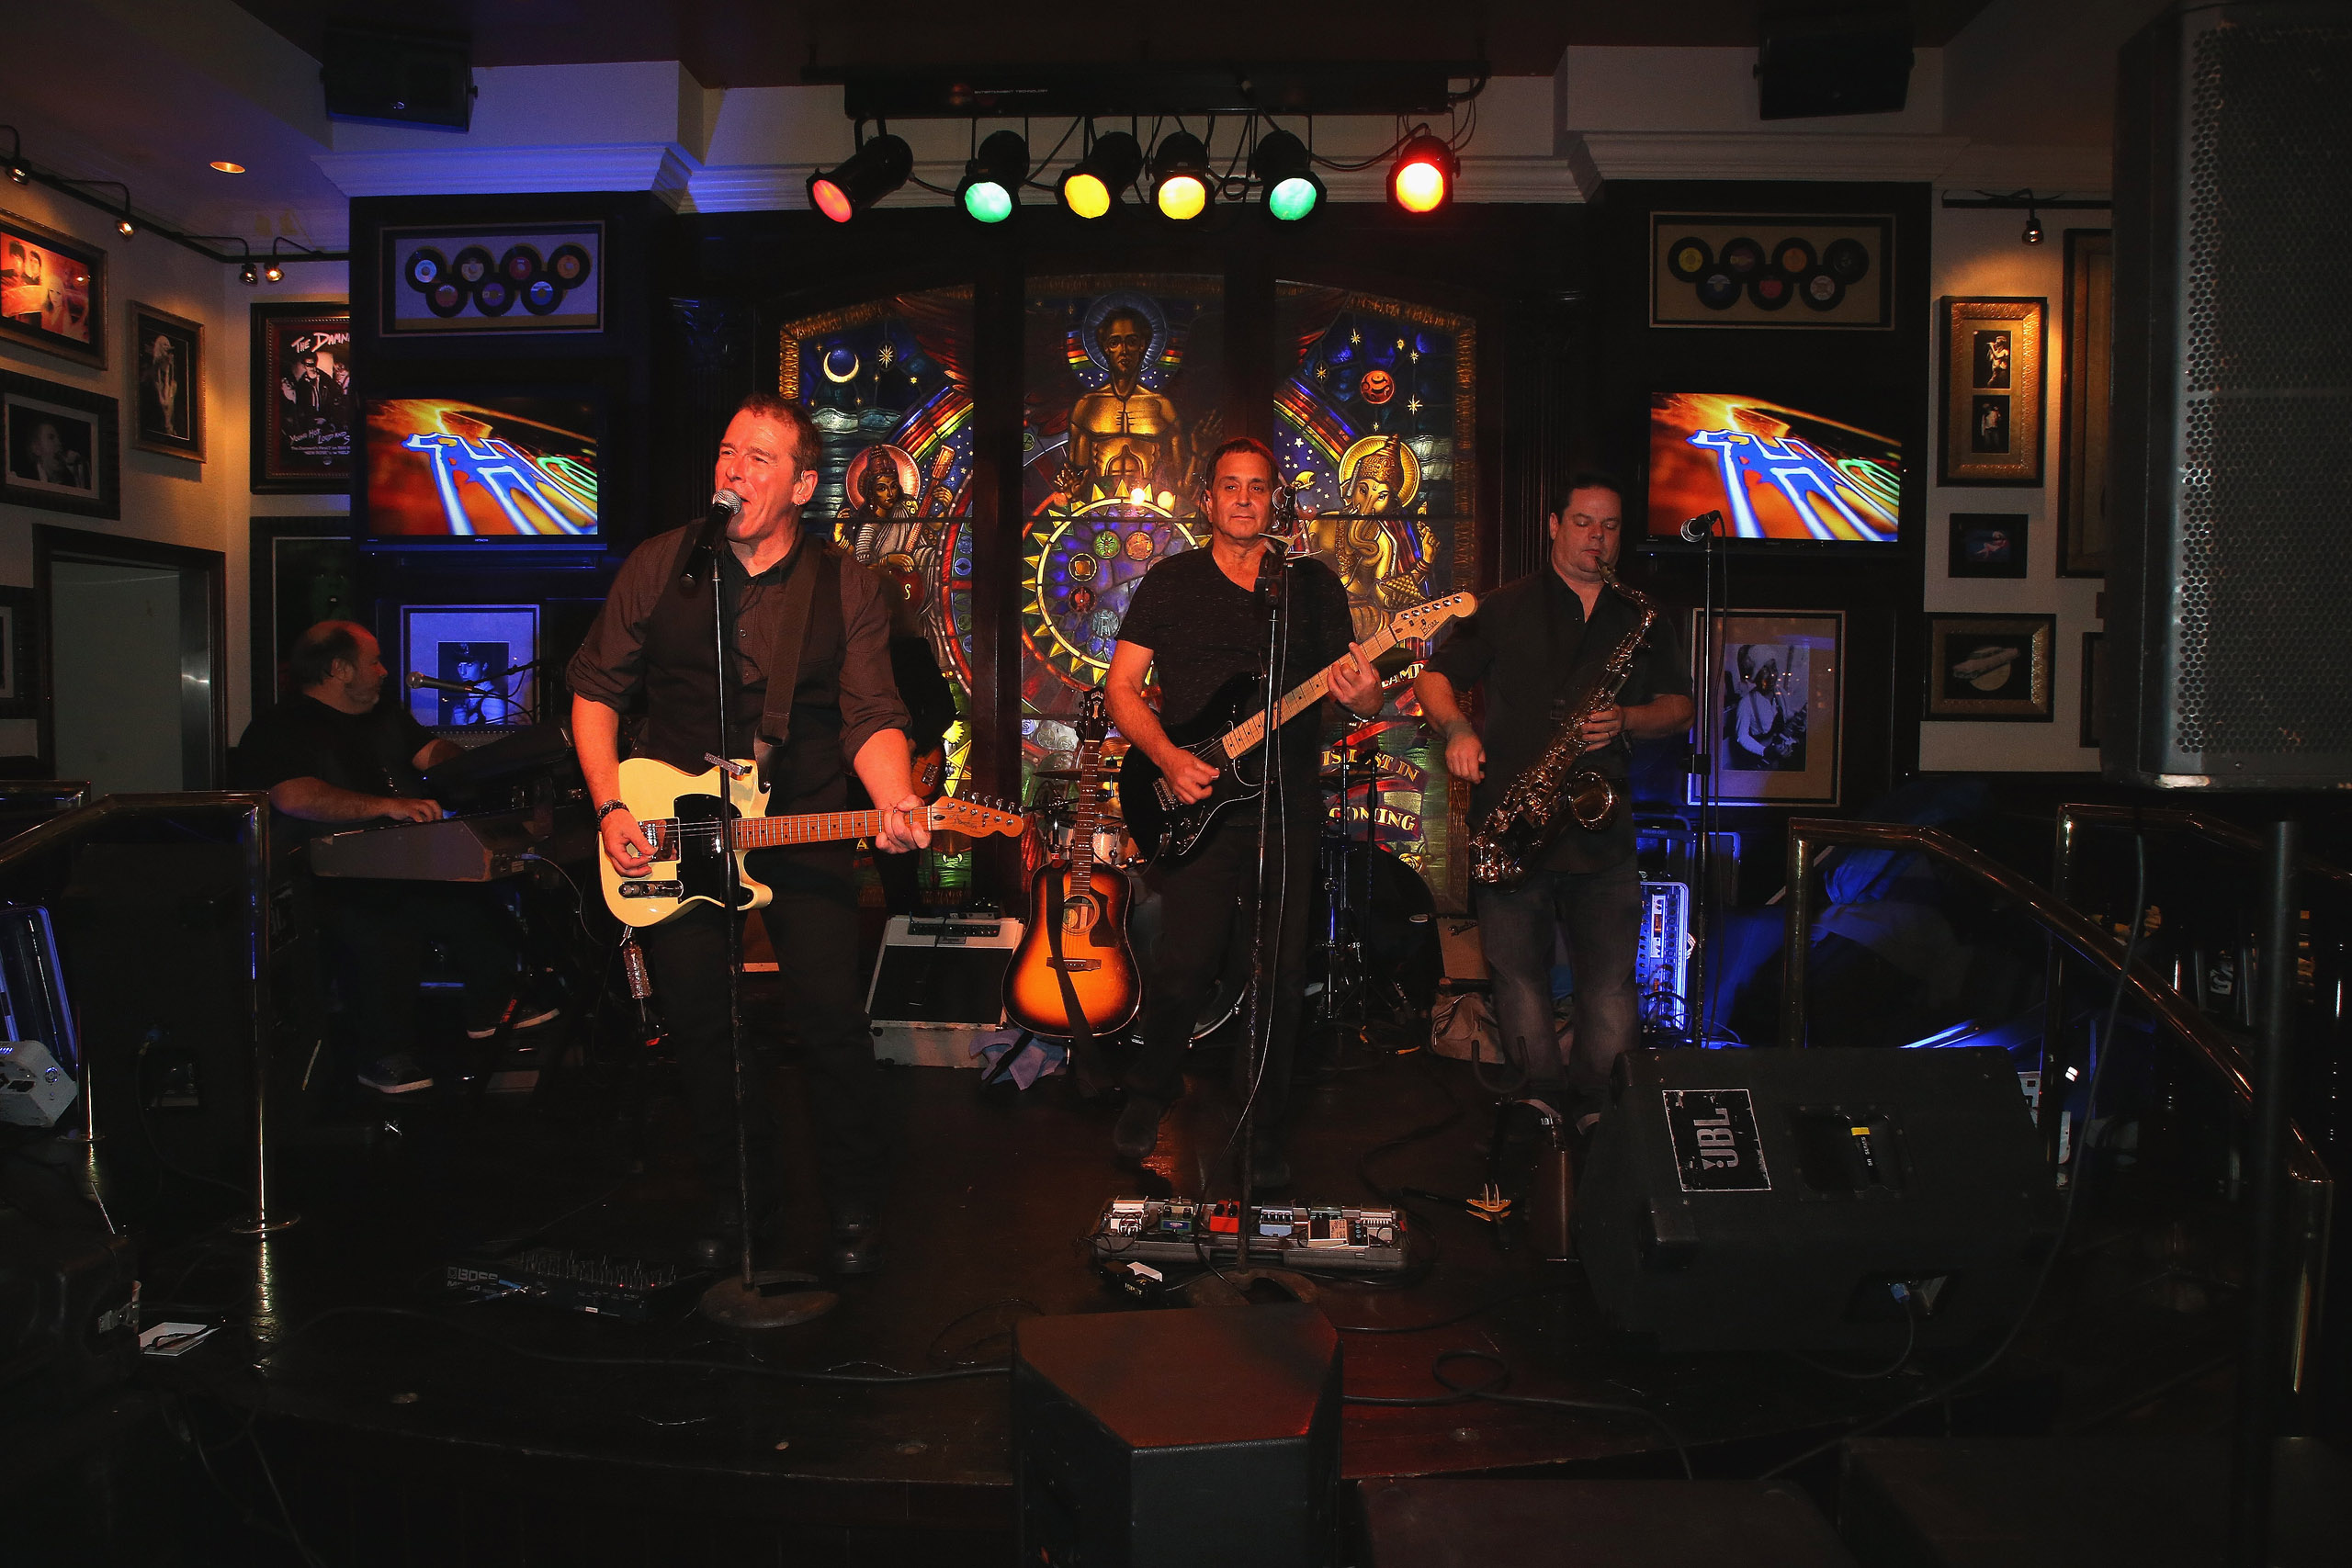 The B Street Band performs at the Hard Rock Cafe's 20th Anniversary bash in Atlantic City, NJ on Nov. 15, 2016.